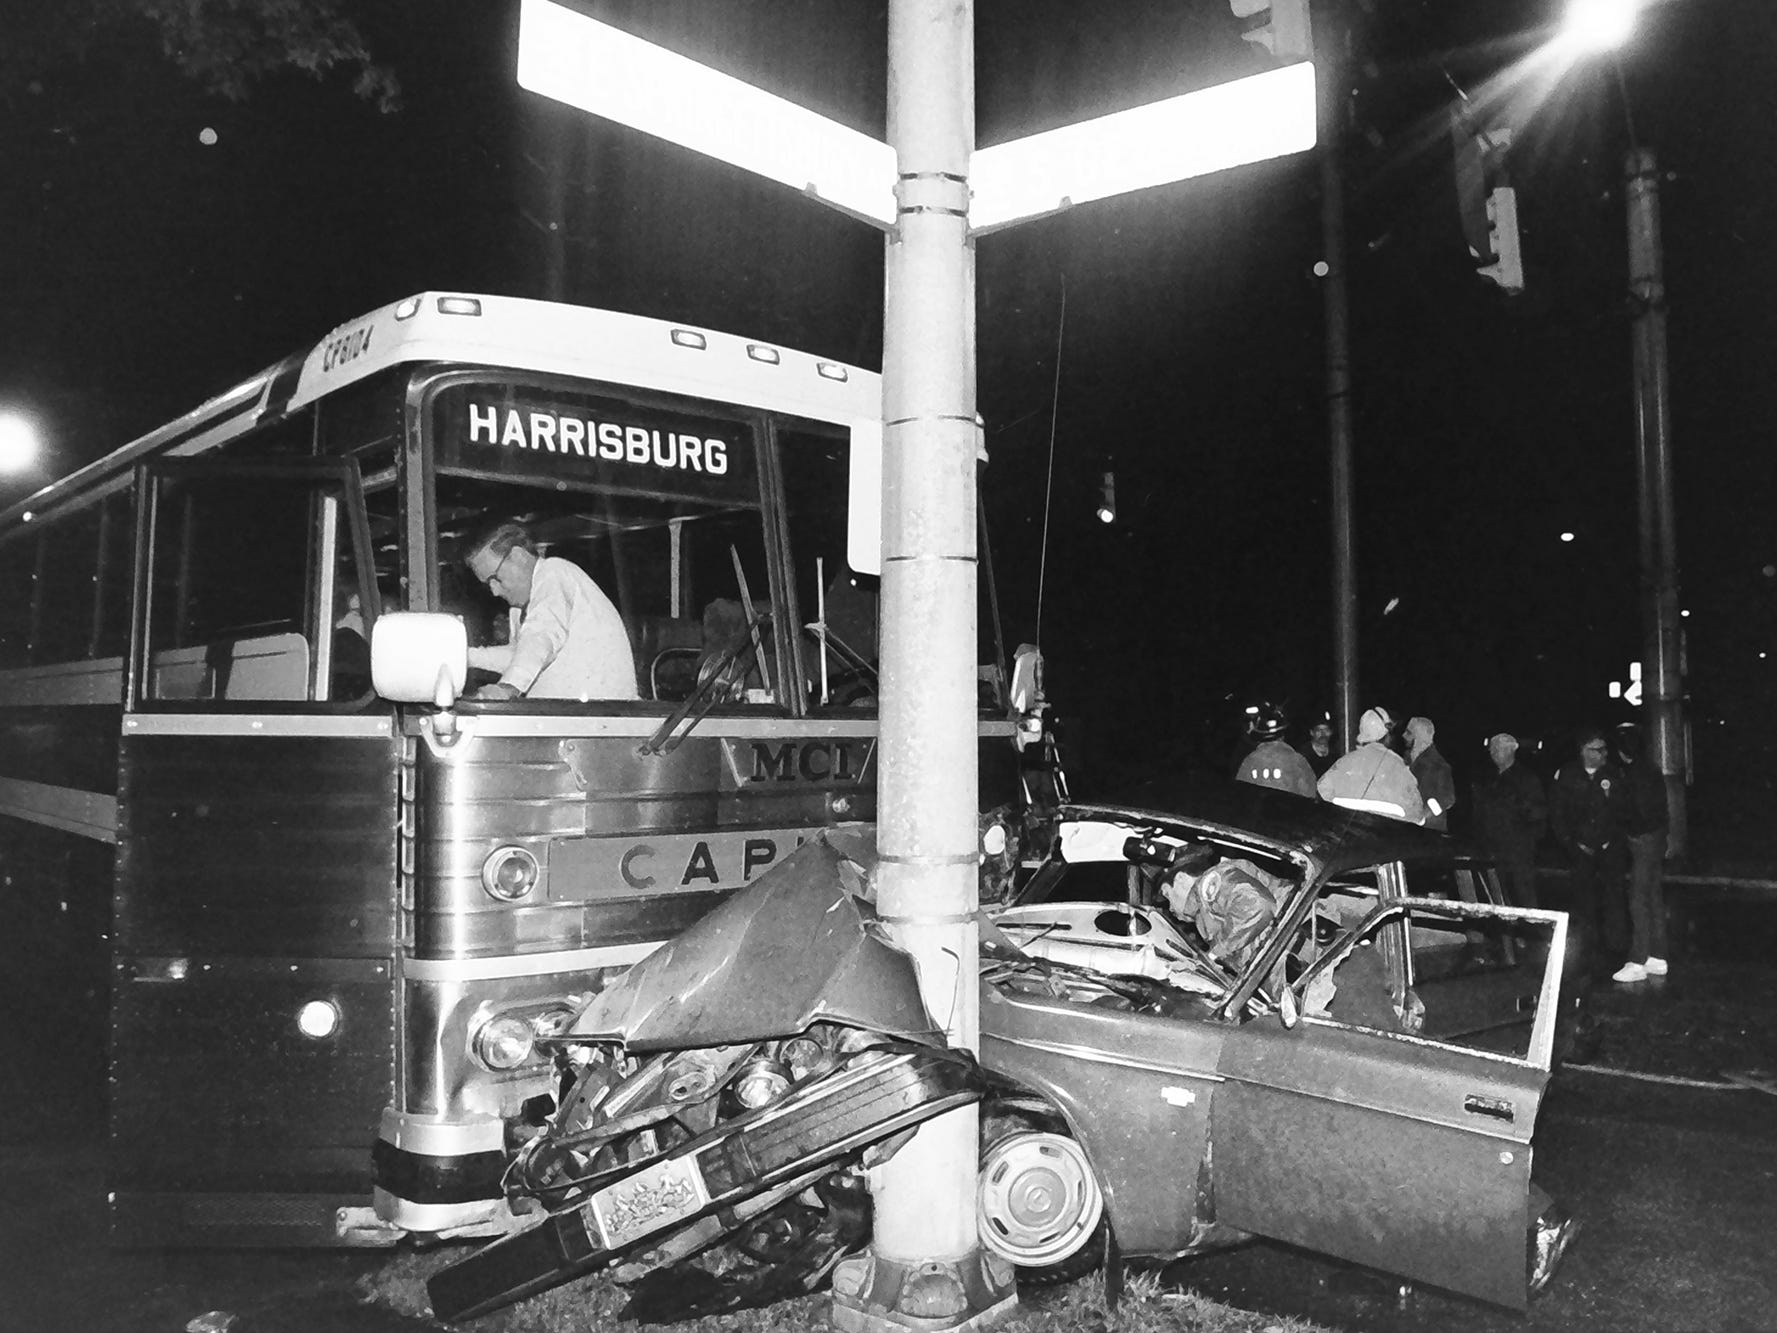 "In 1985, a bus crushed the front of a Volvo against a pole at Springettsbury and South George streets in York. (Scott Bohlen Says in a facebook comment, ""This accident was because the bus went through a red light on S. George and Springettsbury Ave. and ran into my first girlfriends Volvo - it orange like a pumpkin and she named it Linus."")"